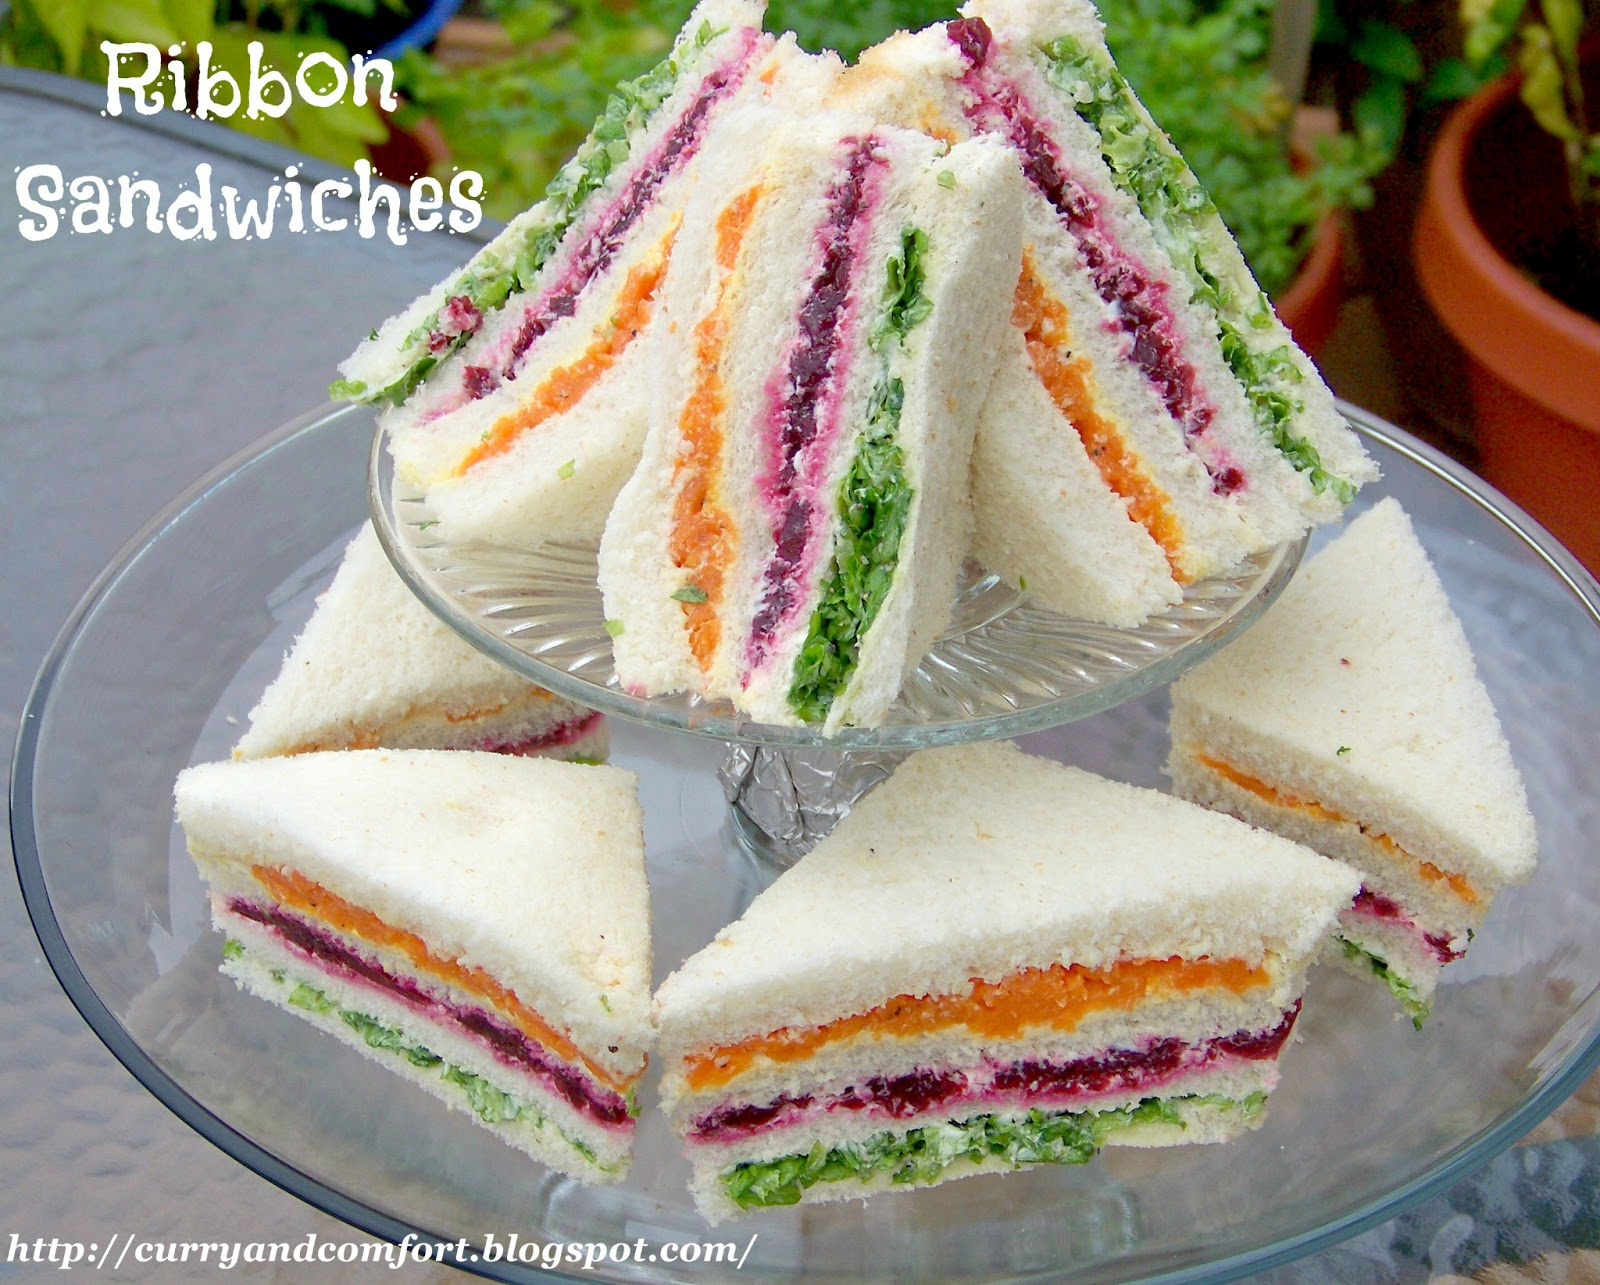 Kitchen simmer sri lankan ribbon sandwiches vegetable tea sandwiches vegetable sandwiches made out of layers of carrots beets and lettuce not only look beautiful they are a delicious appetizer or tea sandwich for any party forumfinder Image collections